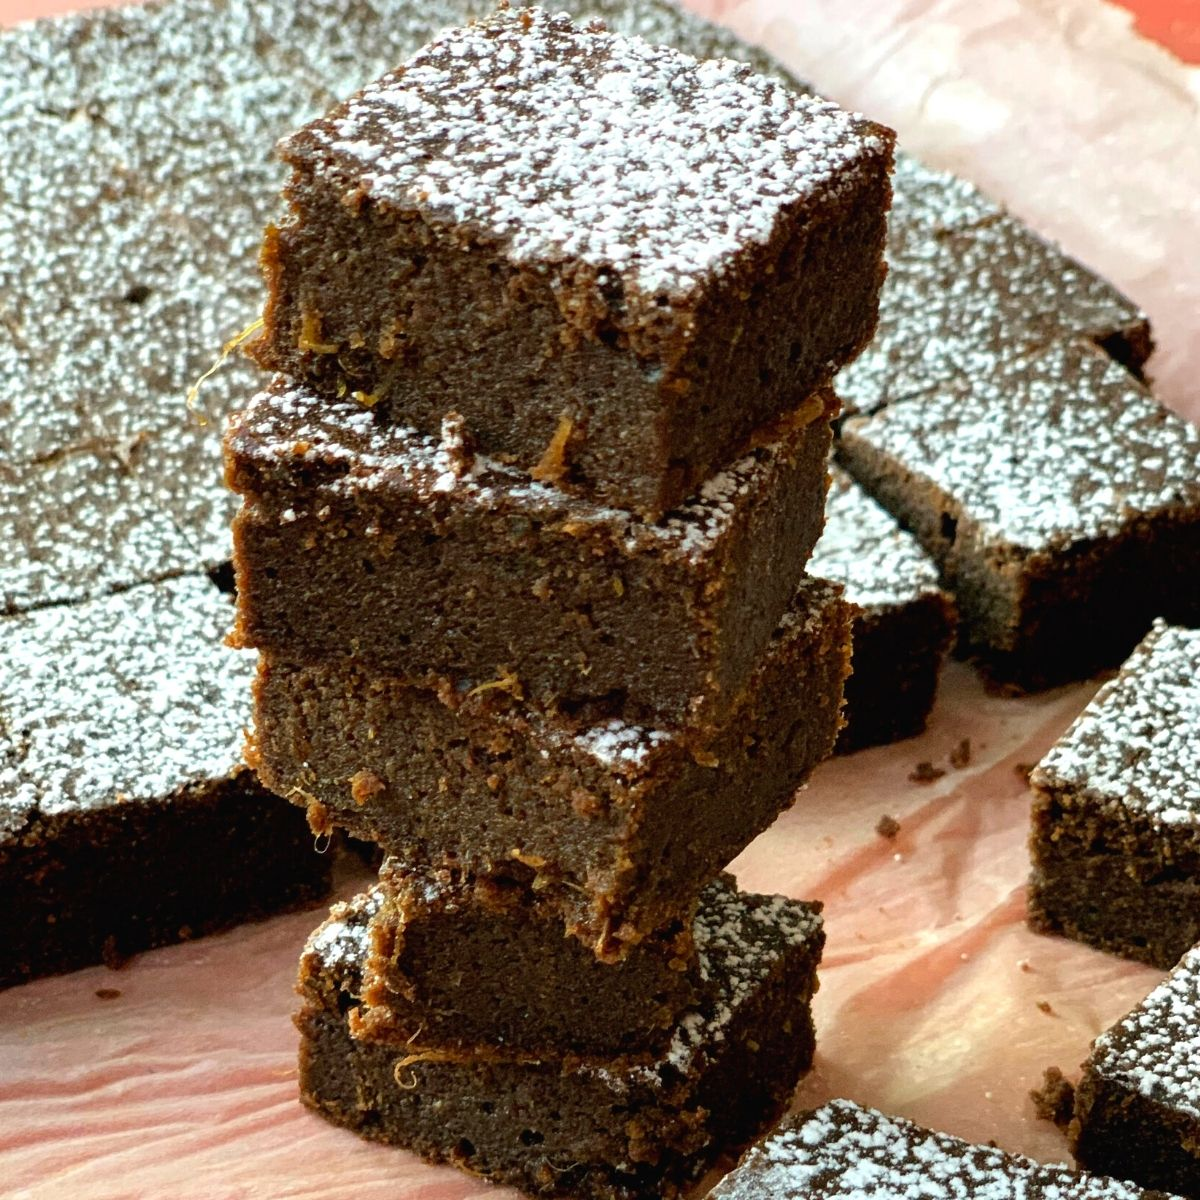 Whole Wheat kale brownies are dangerously delicious, addictive, and fudgy brownies enjoyed along with a cup of coffee or best as a sizzling dessert.